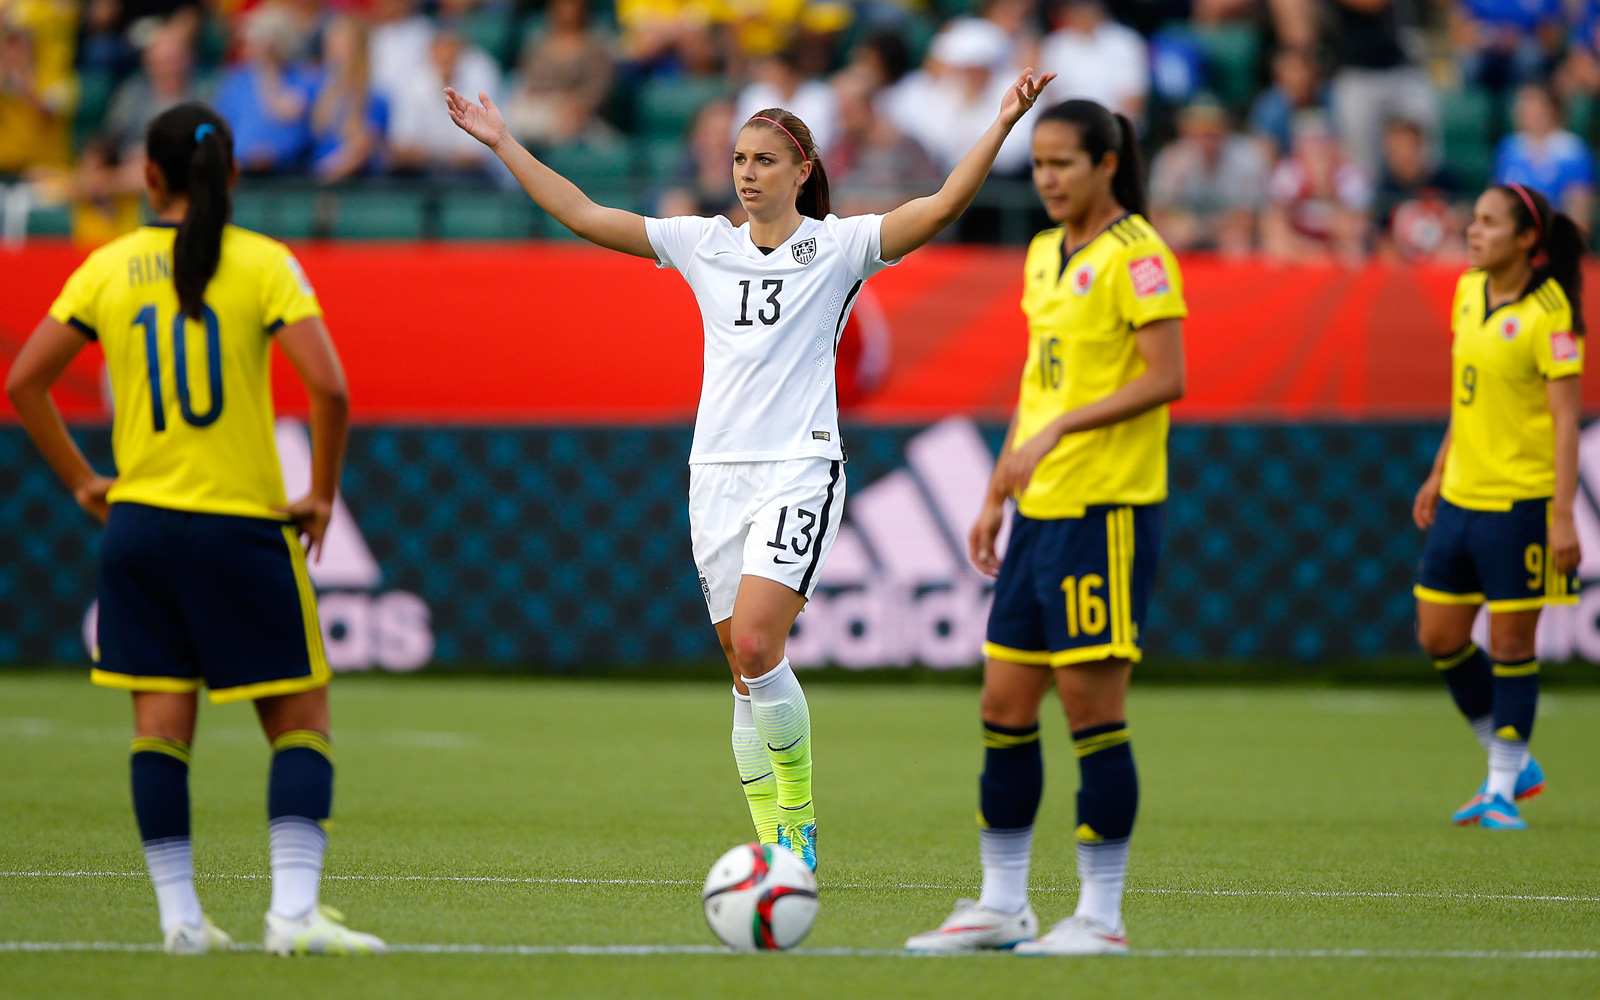 Alex Morgan's goal broke a 0-0 draw, provided relief after Abby Wambach's PK miss and helped the U.S. women to the World Cup quarterfinals after a 2-0 win over Colombia in the round of 16.